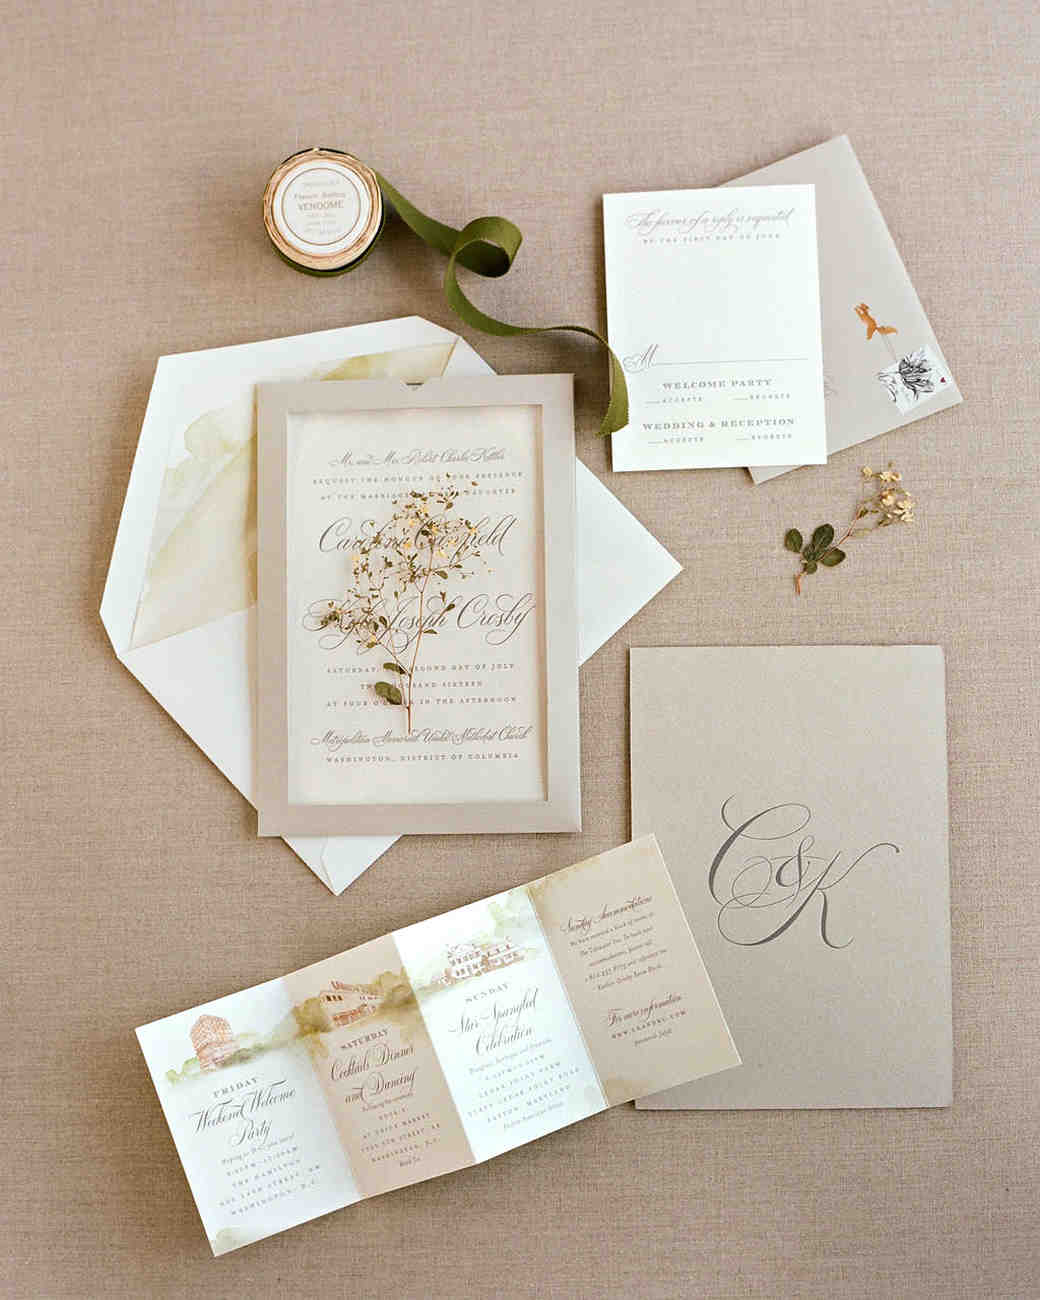 Martha stewart wedding invitation kit mini bridal for Wedding invitation kits martha stewart